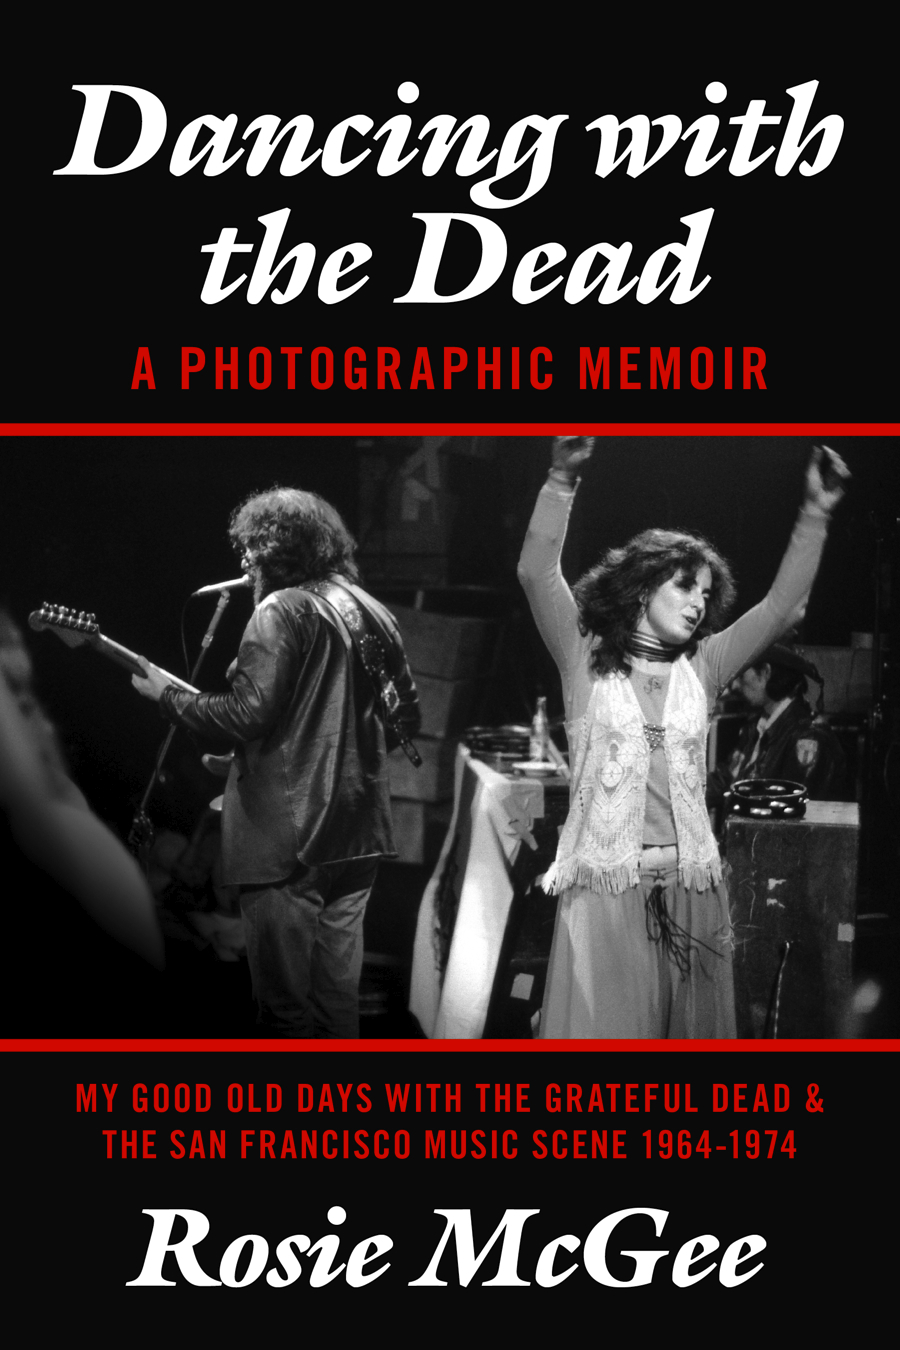 Dancing with the Dead--A Photographic Memoir: My Good Old Days with the Grateful Dead & the San Francisco Music Scene 1964-1974 By: Rosie McGee